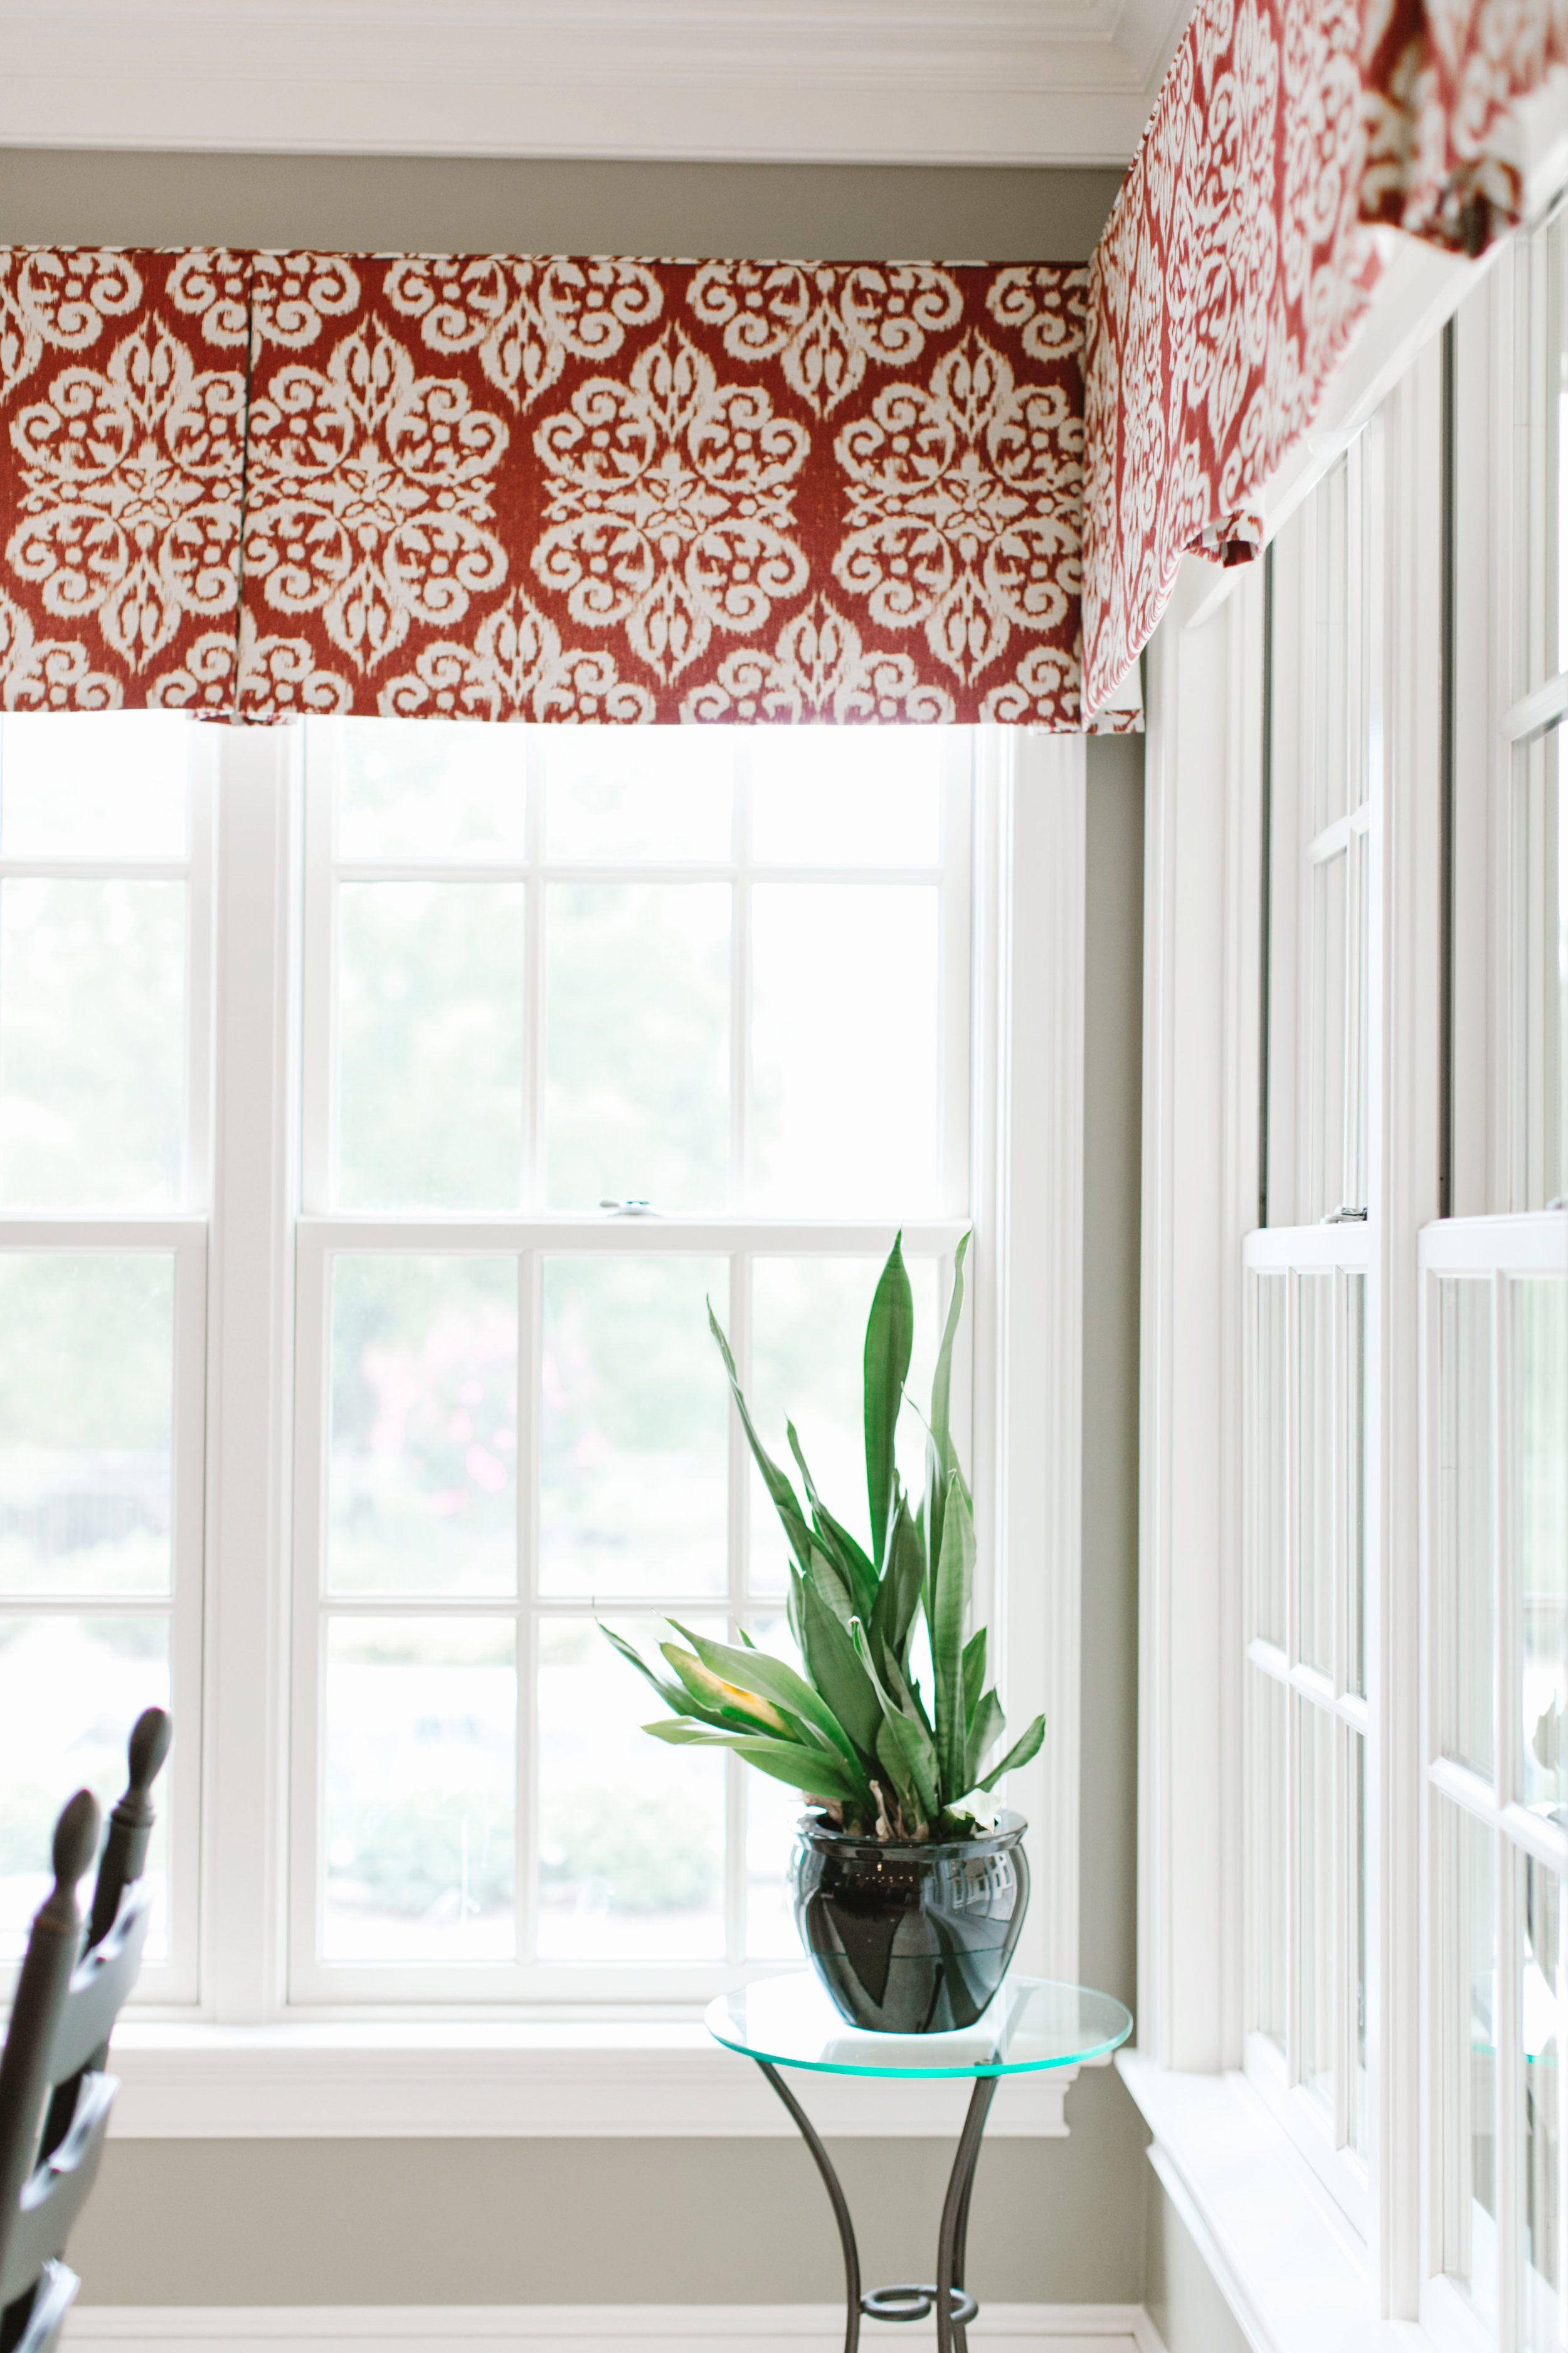 Red fabric valances bring color to a client's dining room